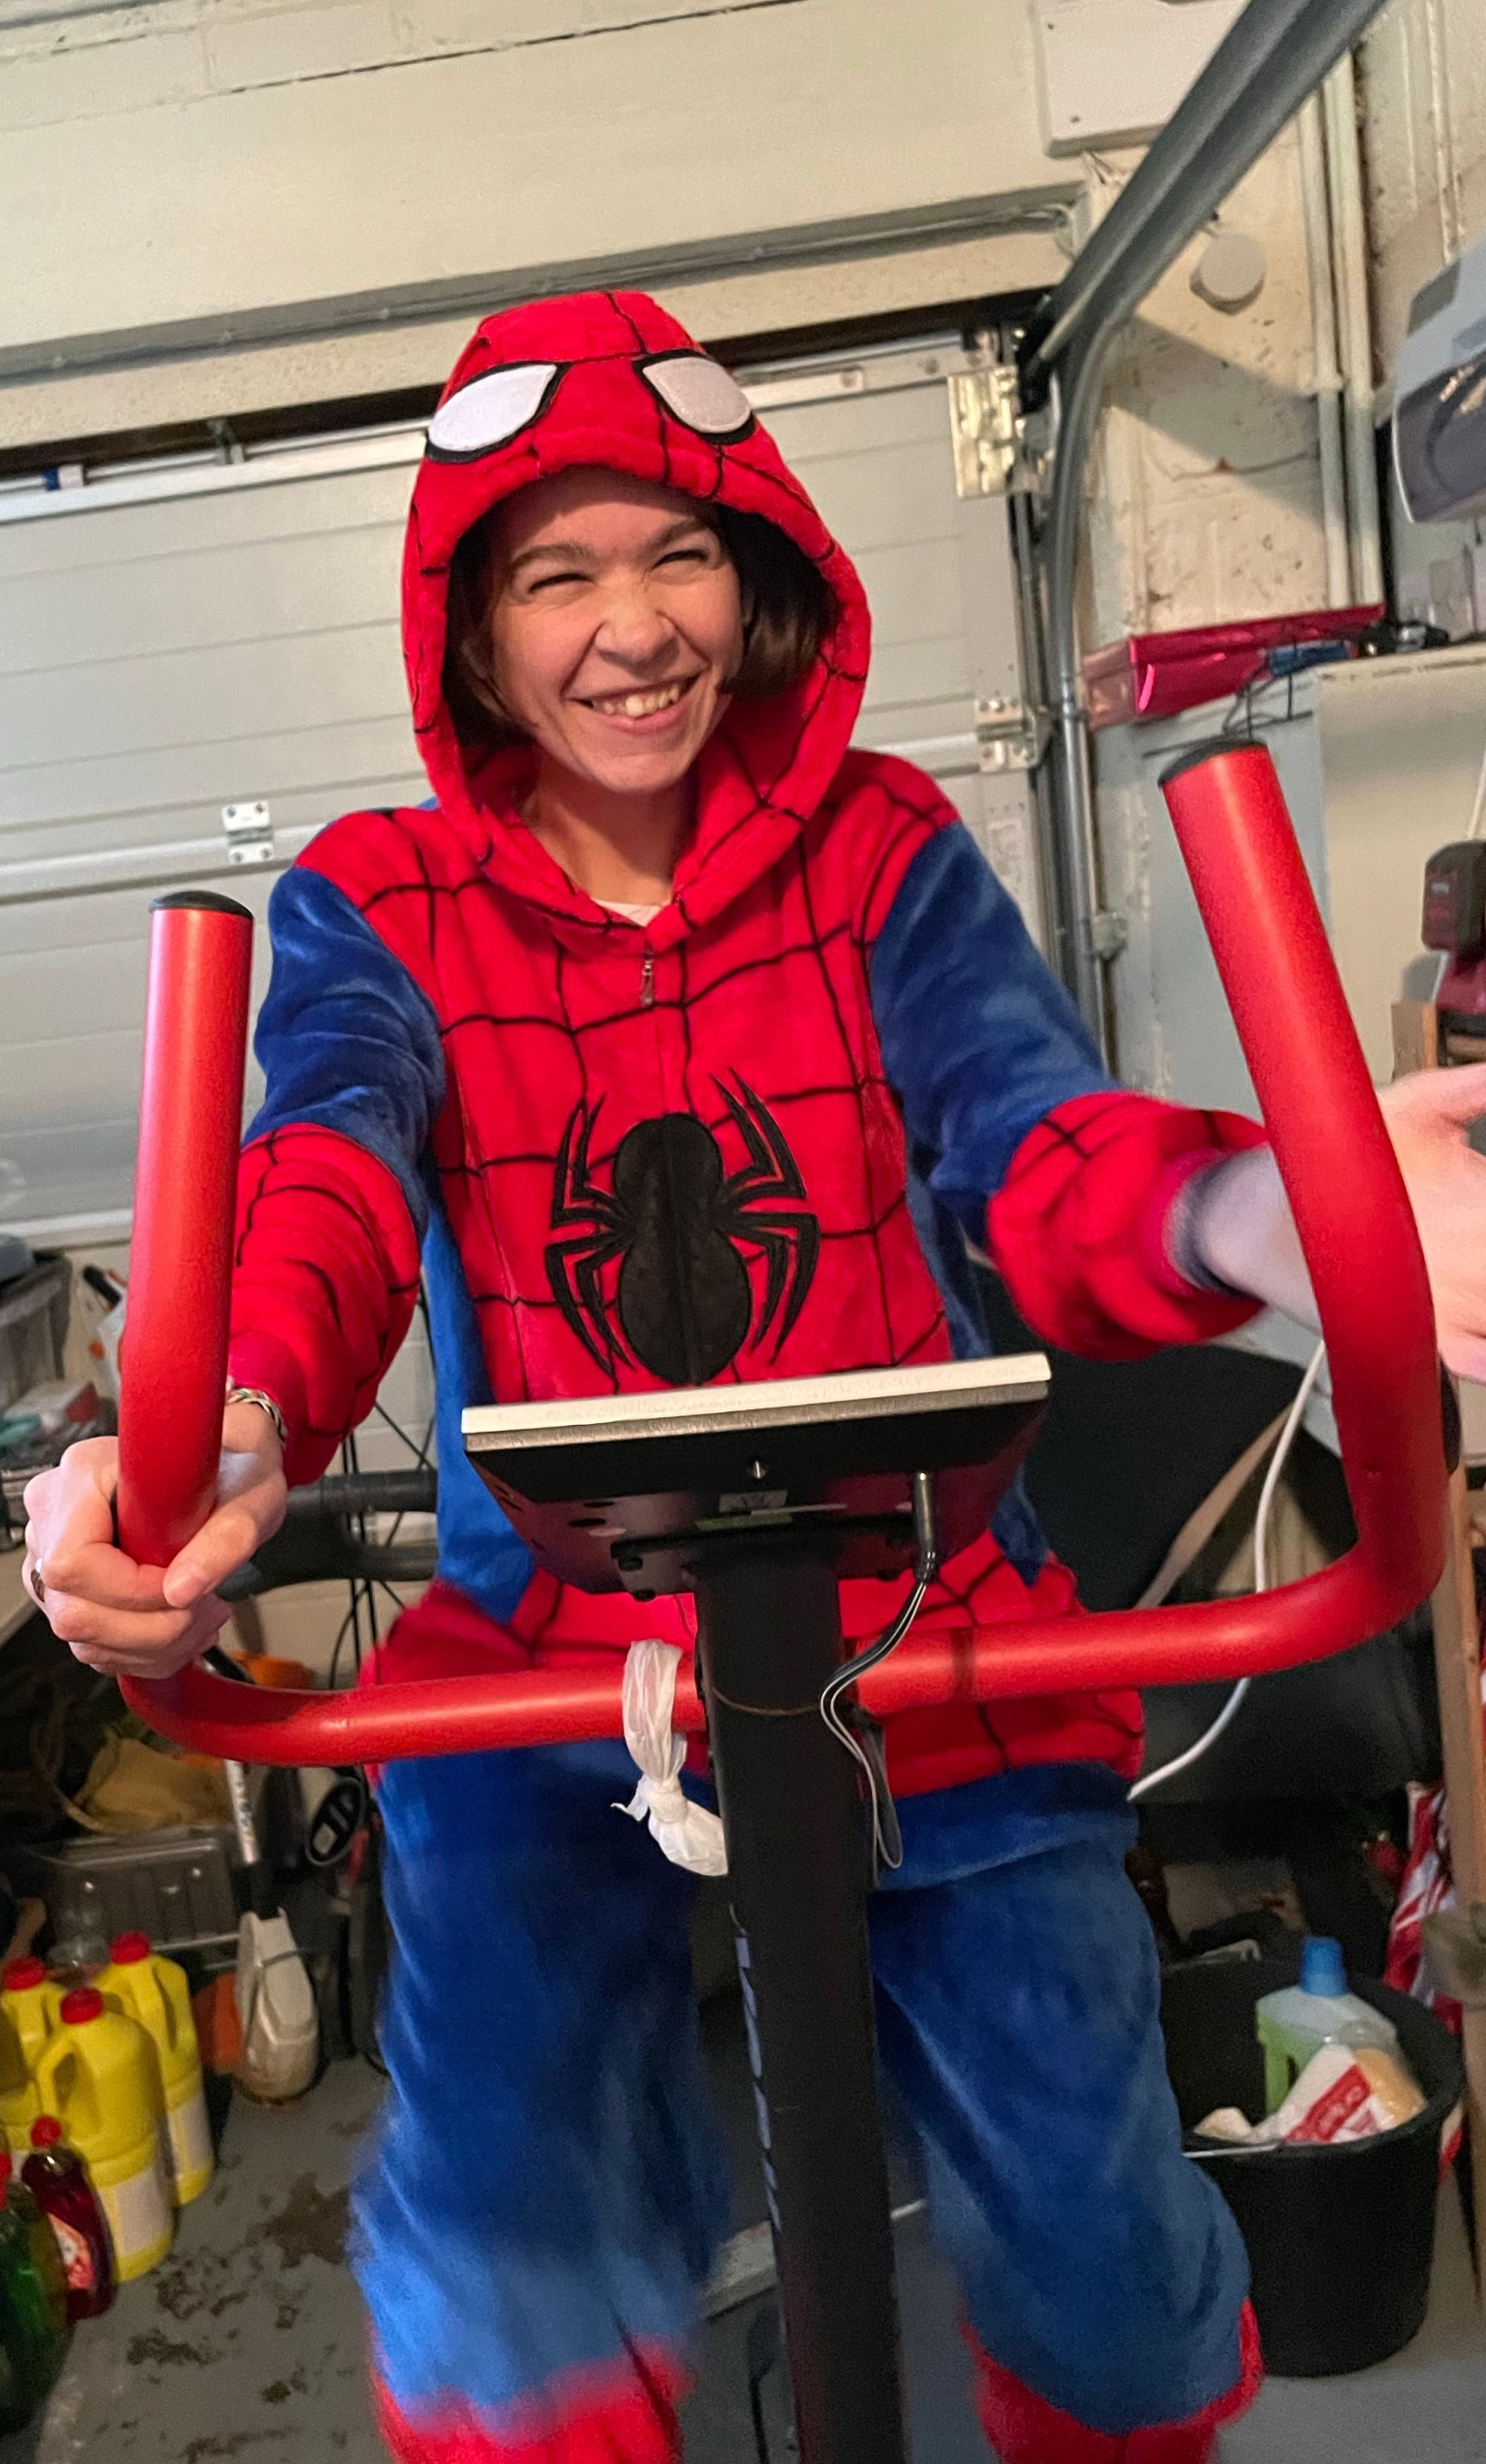 Me sat. On the exercise bike in my Spider-Man onesie laughing.